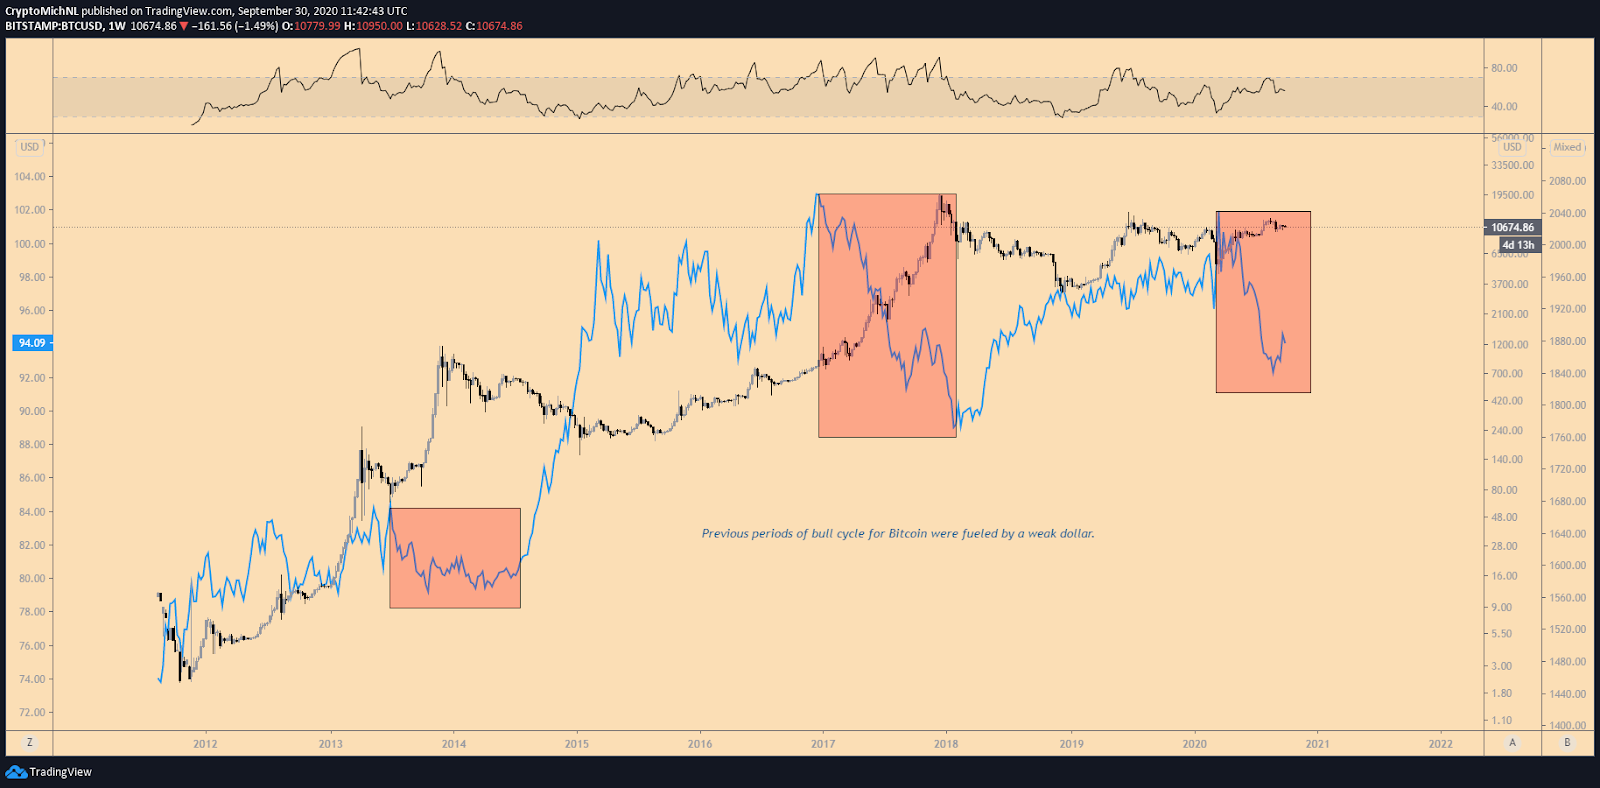 BTC/USD vs DXY 1-week chart. Source: TradingView